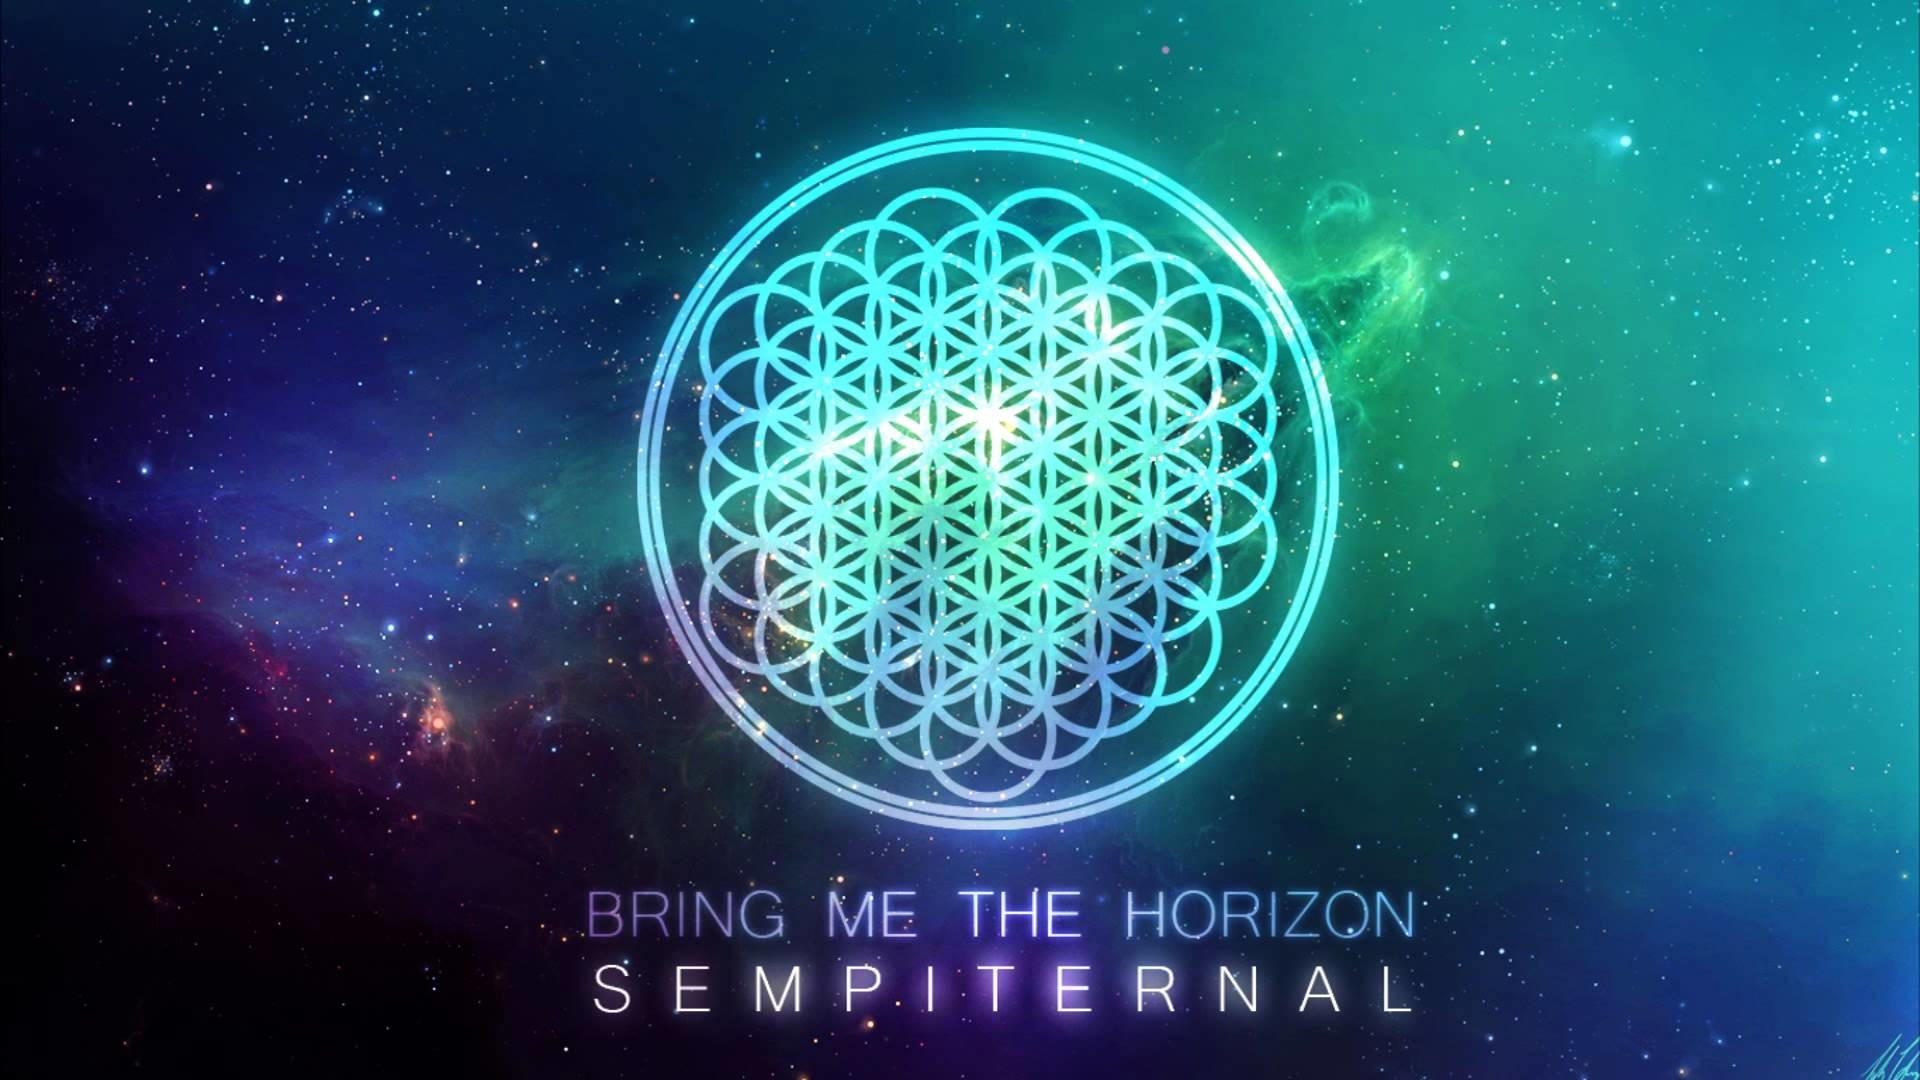 Bmth Backgrounds 64 Pictures